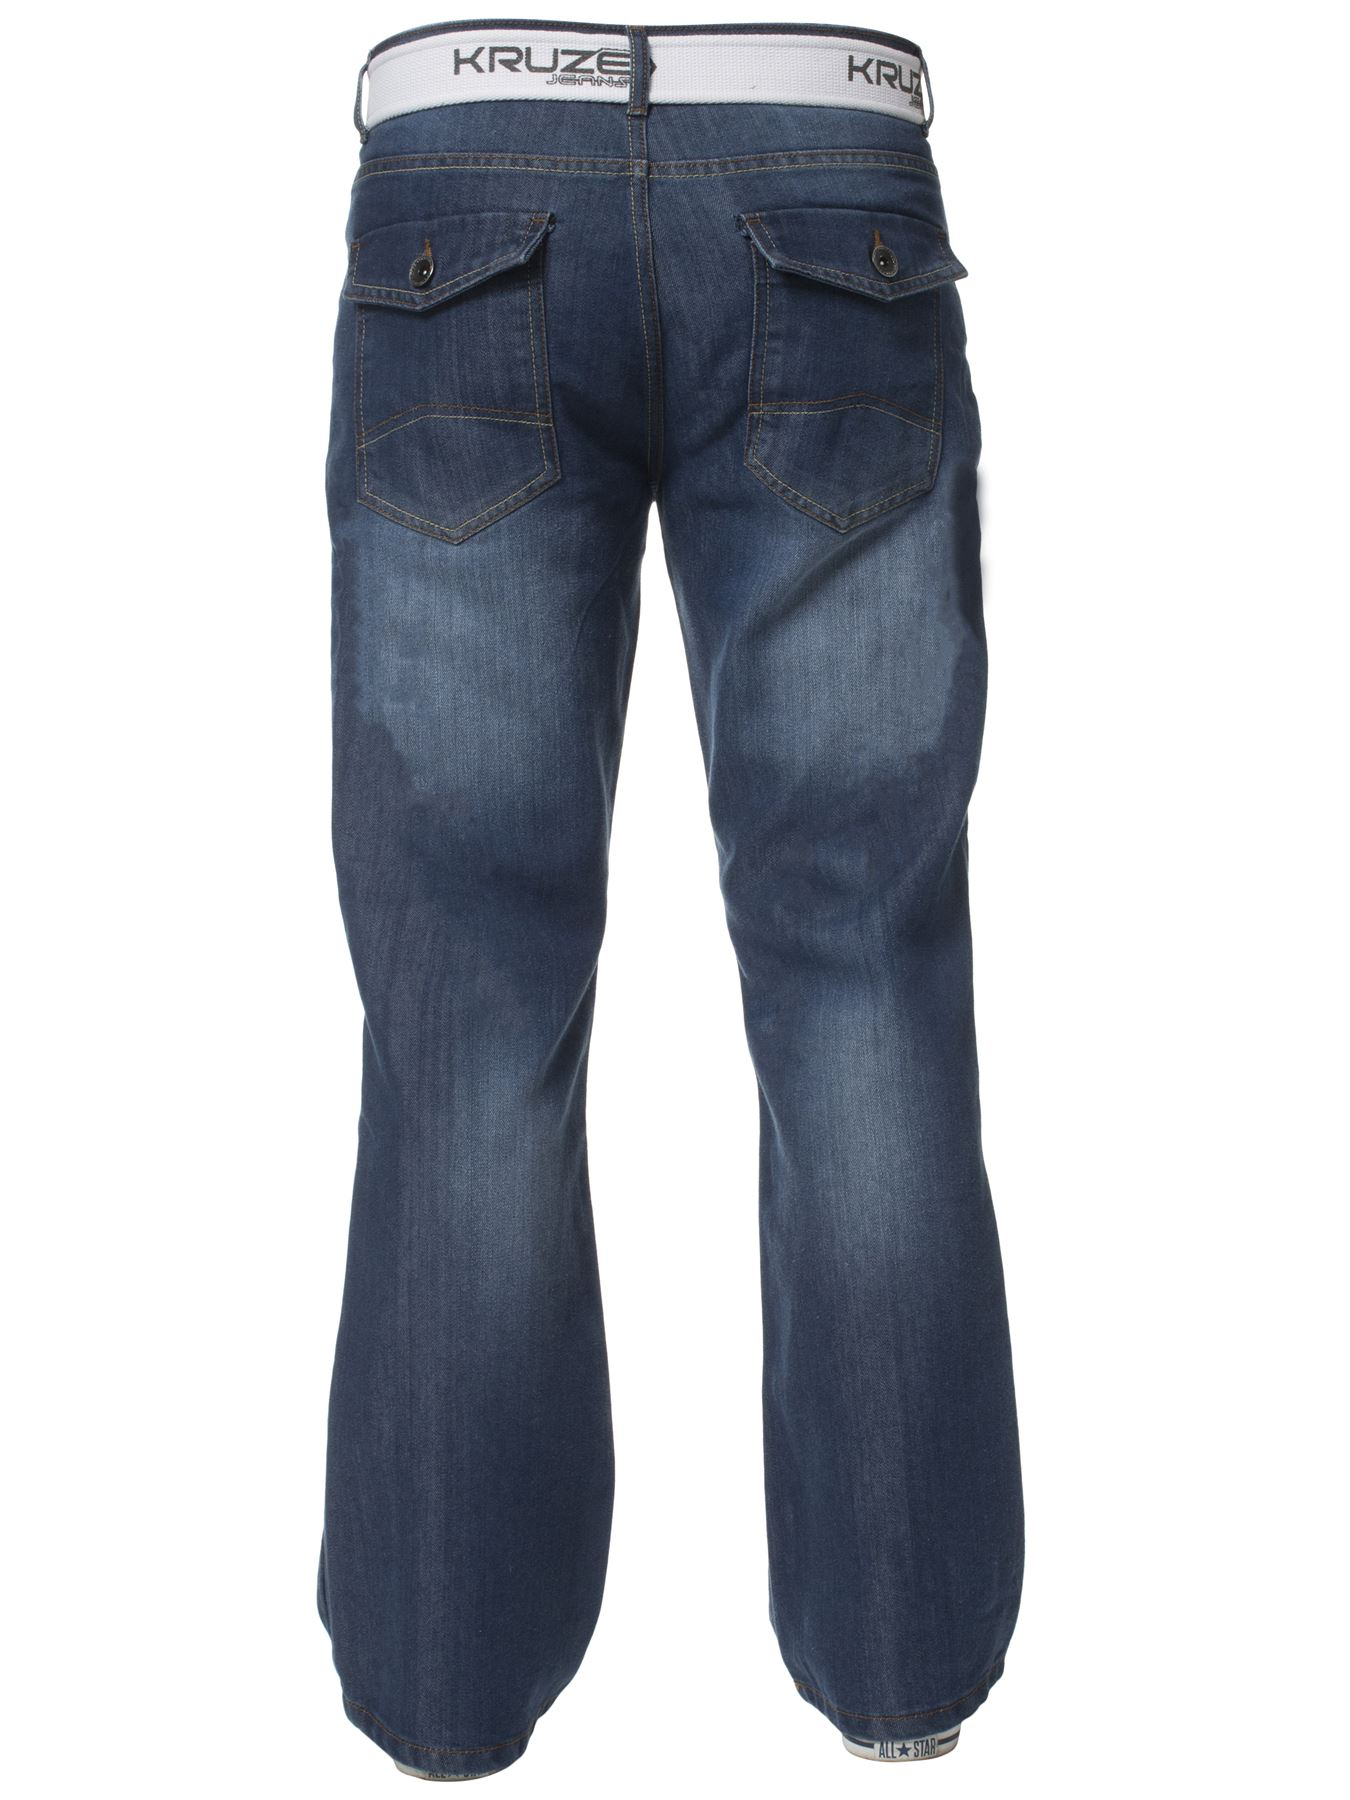 Kruze-Denim-New-Mens-Bootcut-Jeans-Wide-Leg-Flare-Pants-King-Big-All-Waist-Sizes thumbnail 25